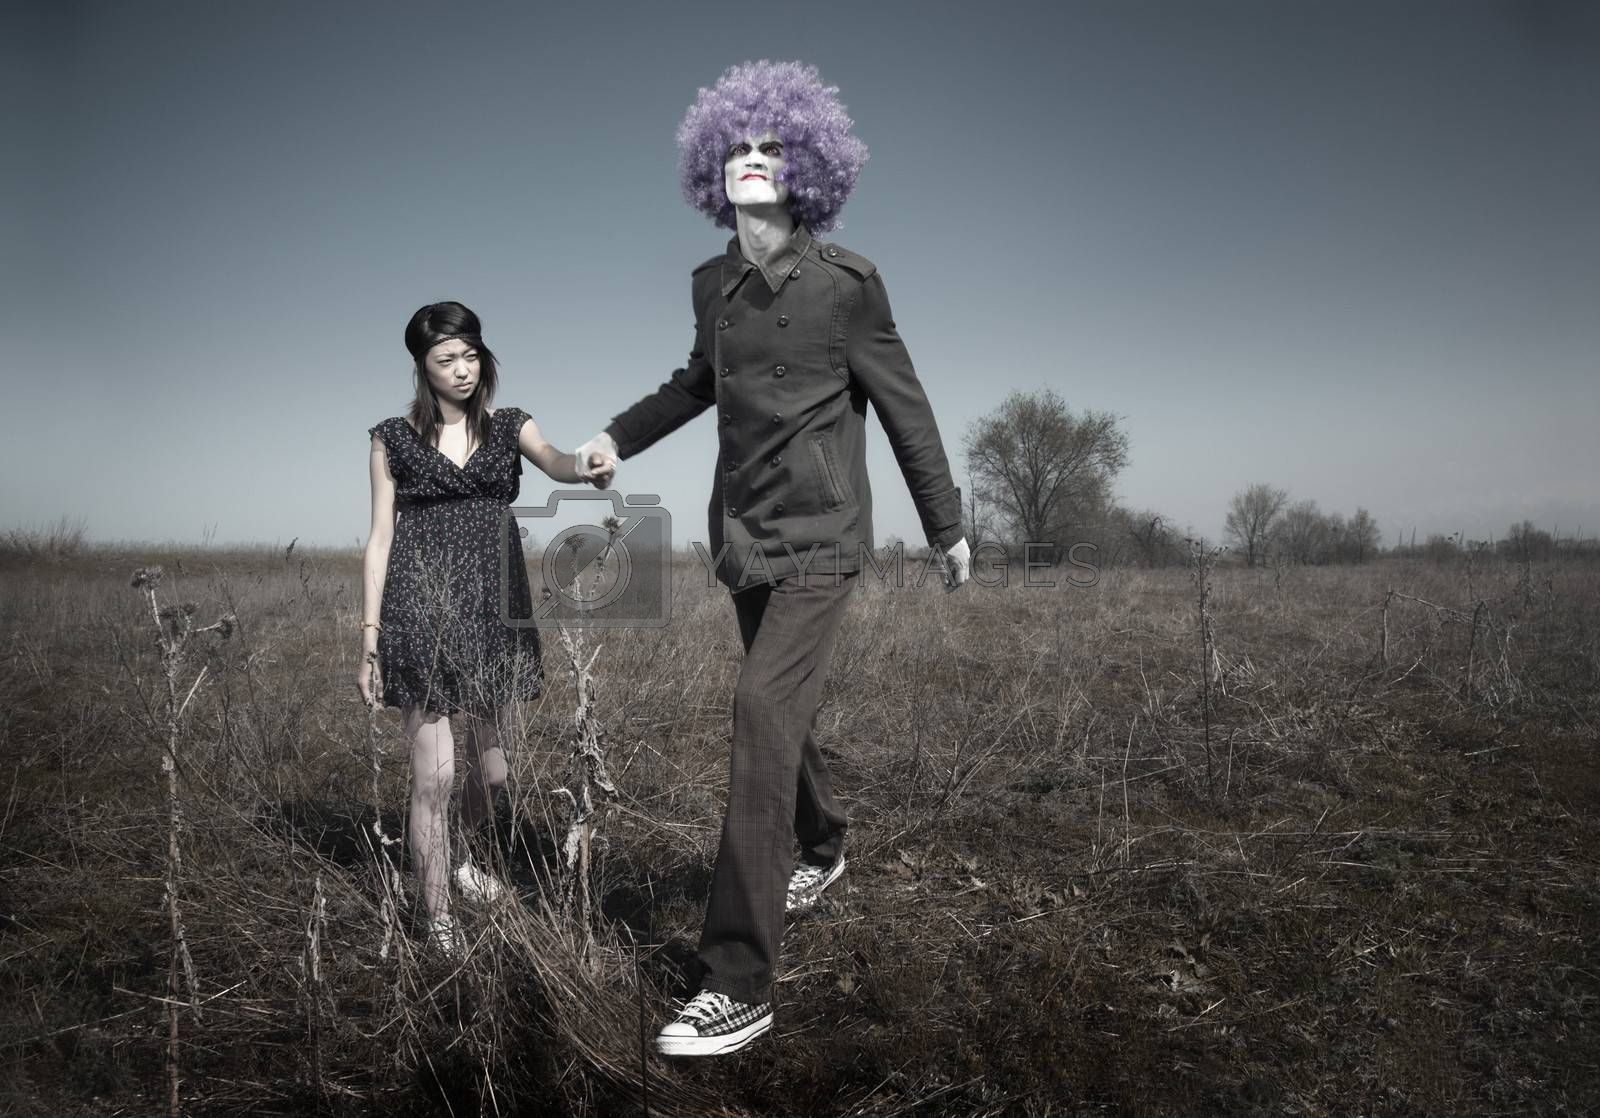 Bizarre couple in relationship conflict. Crazy clown and little girl outdoors. Natural lights and colors